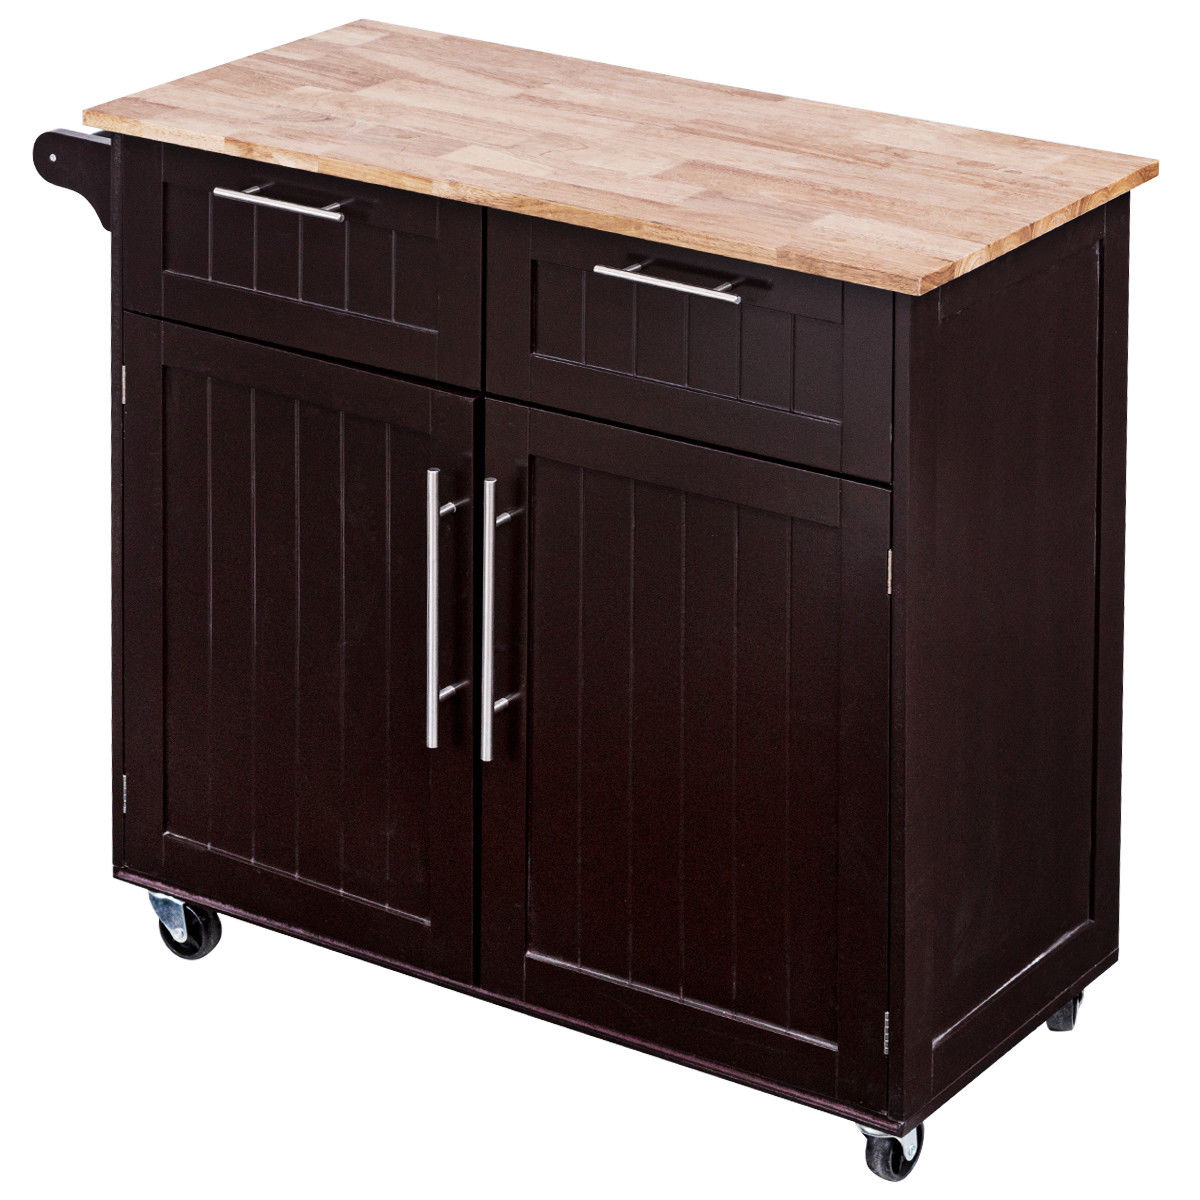 Kitchen Cart With Cabinet: Costway Rolling Kitchen Cart Island Heavy Duty Storage